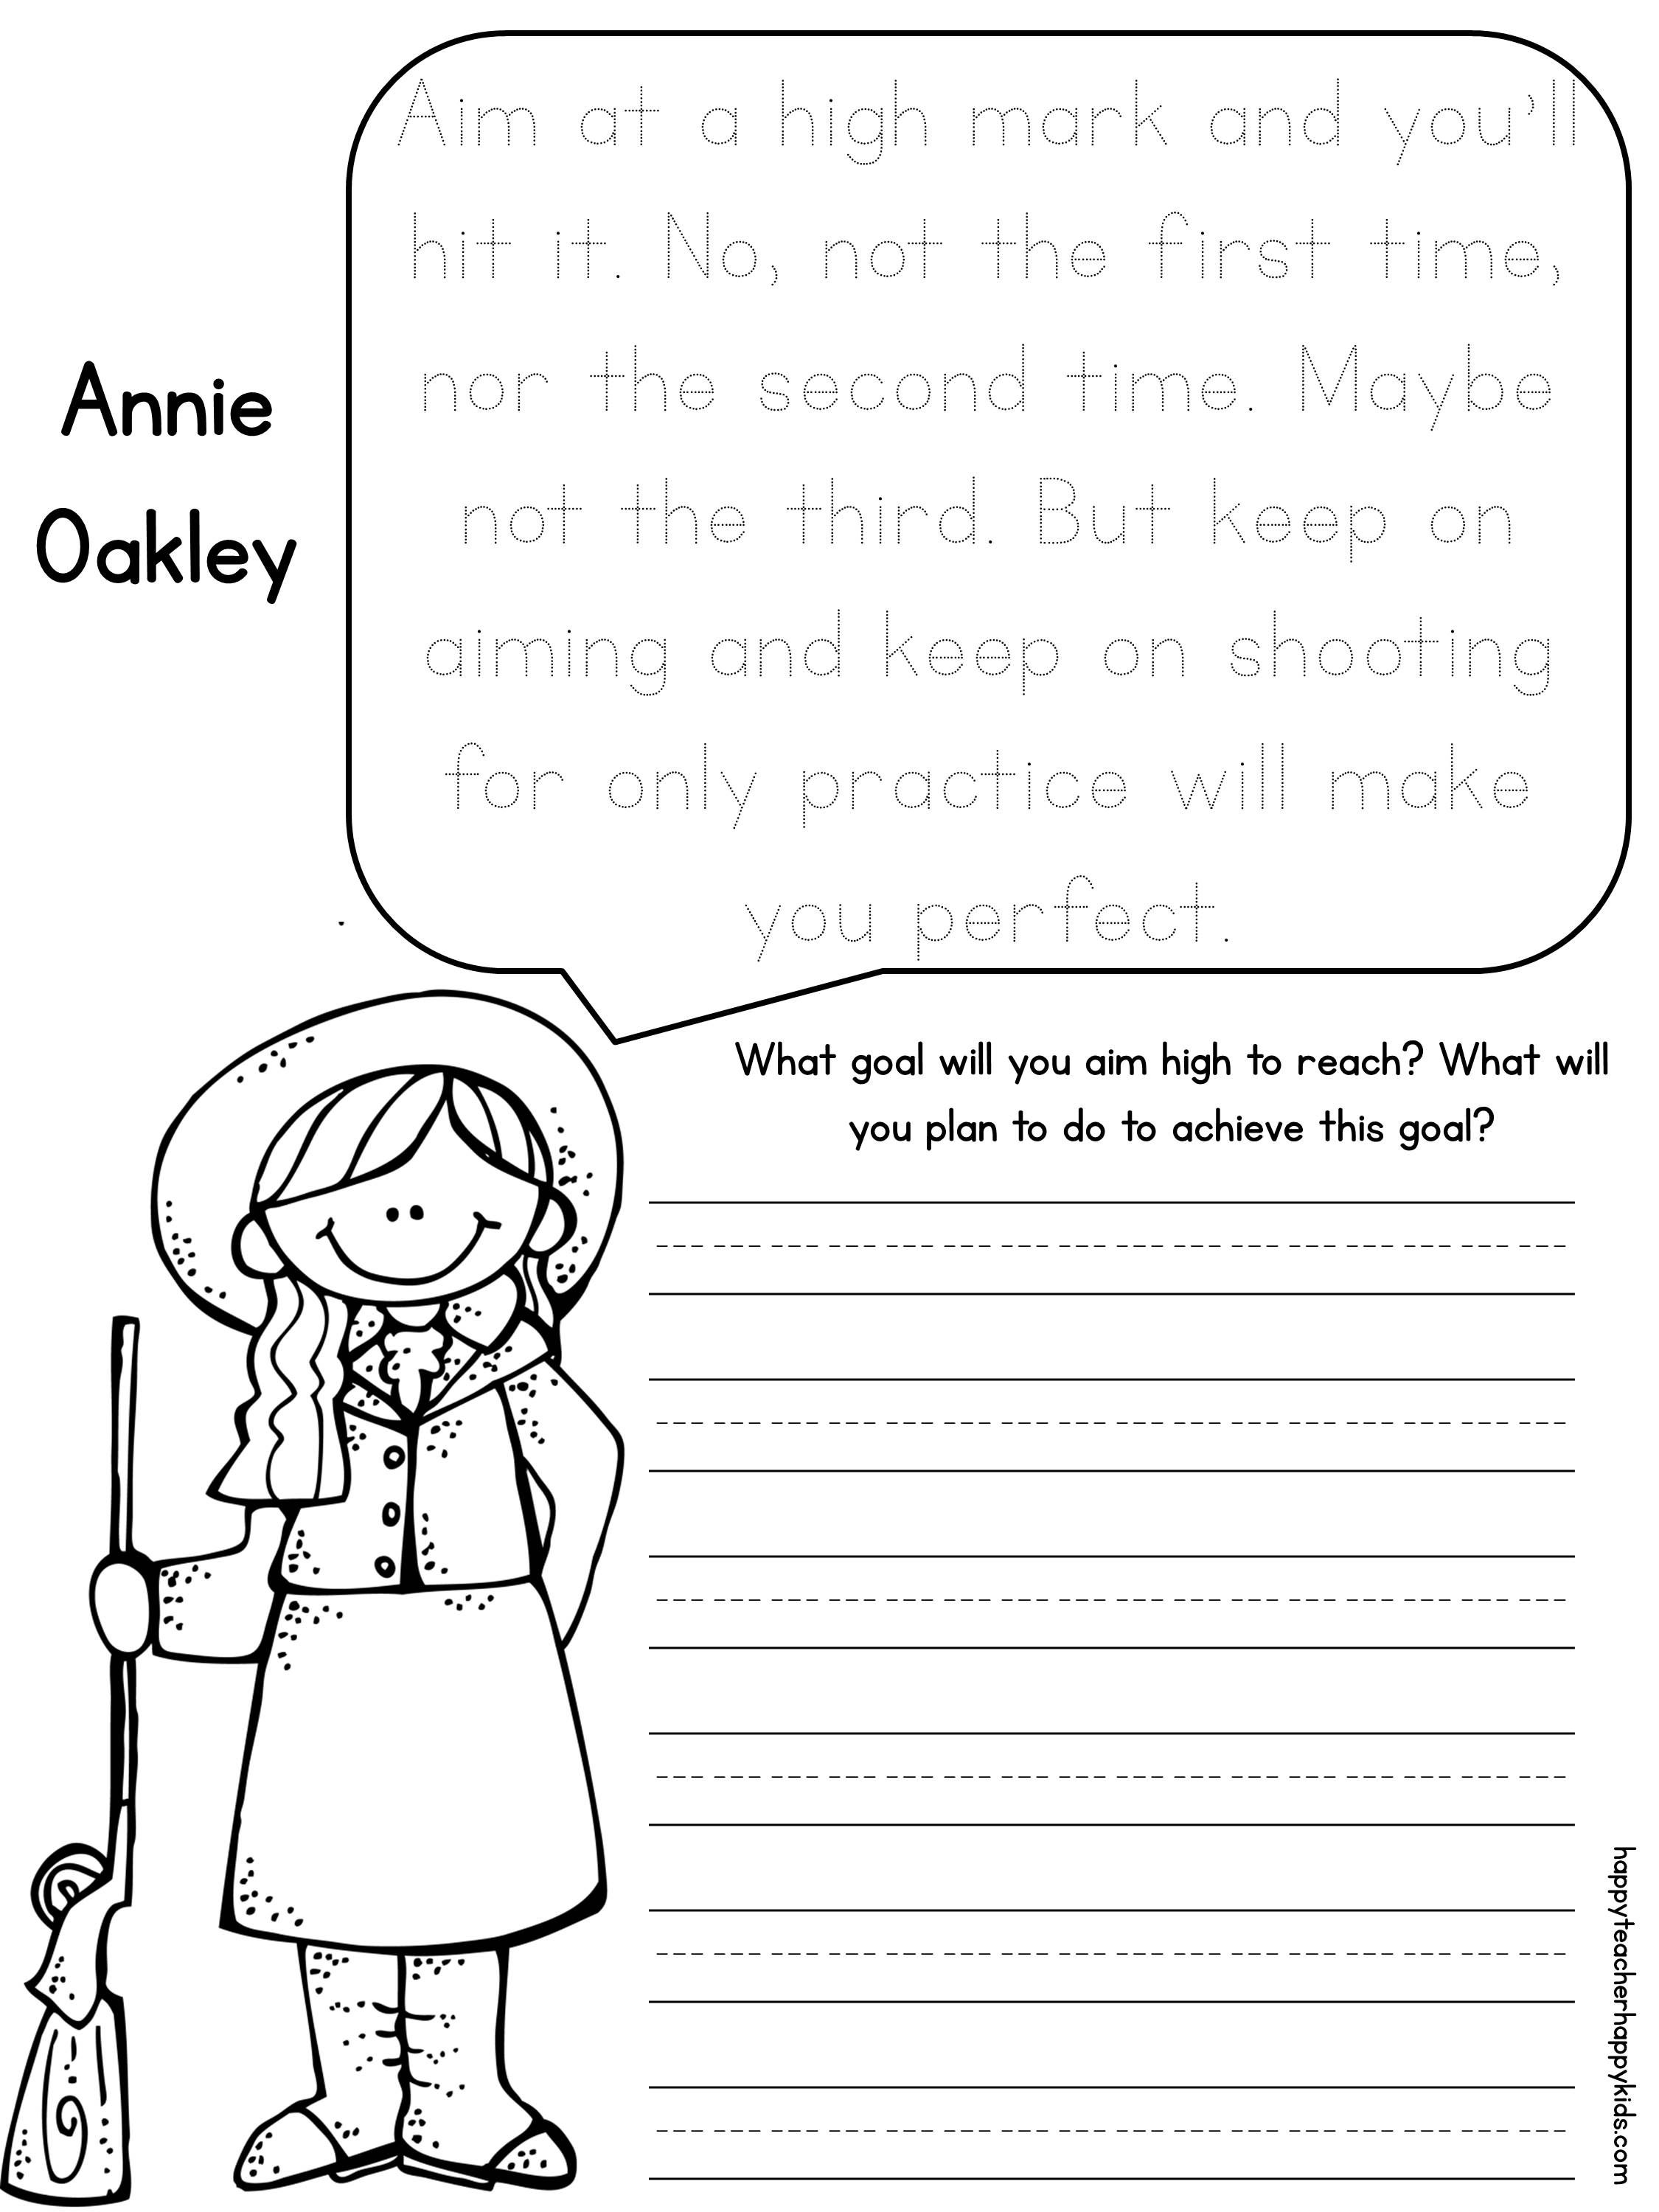 hight resolution of Annie Oakley Women's History Month Freebie!   History worksheets